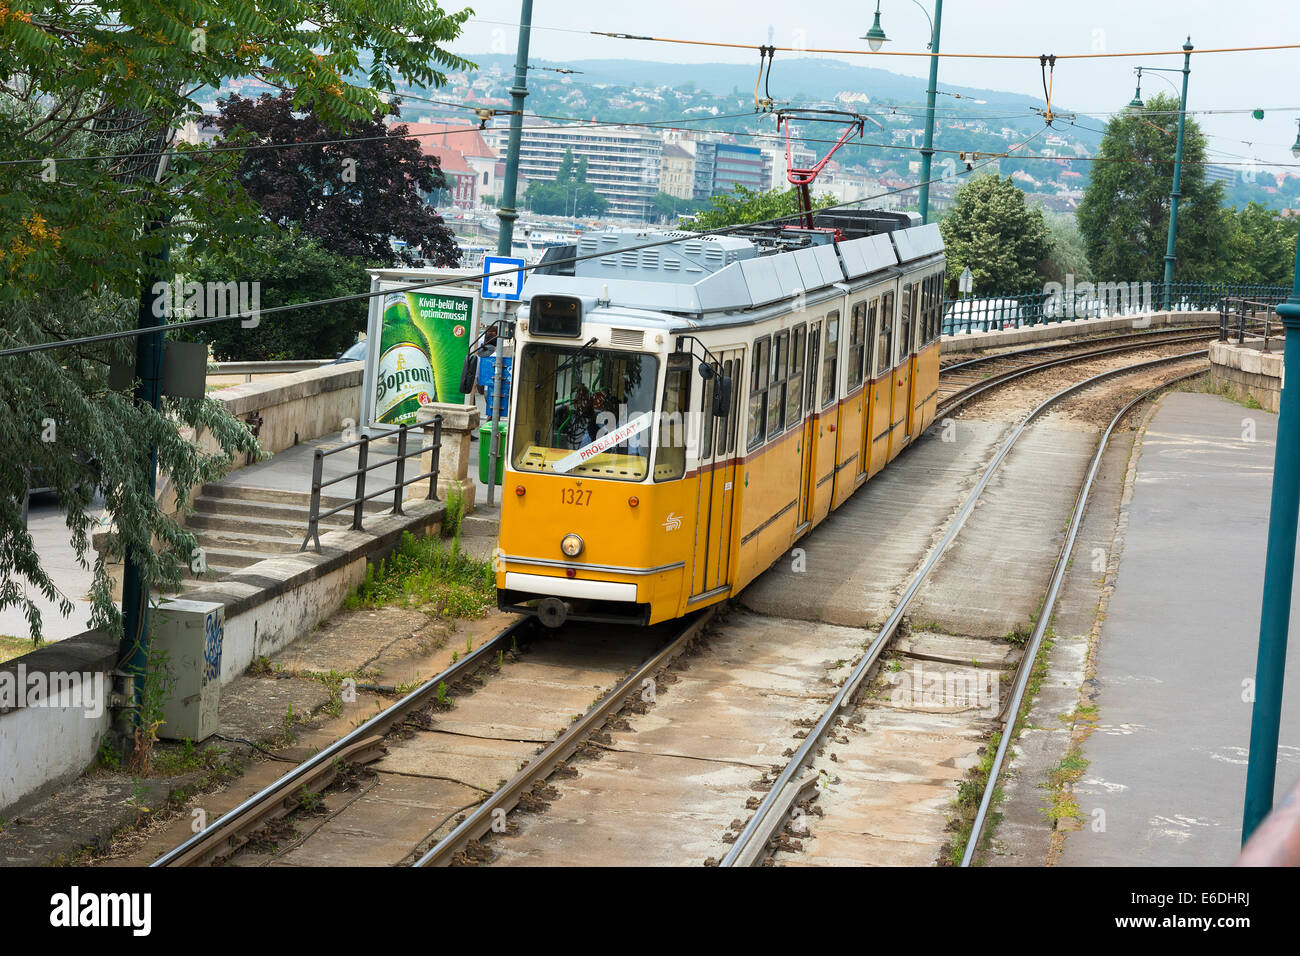 Budapest yellow tram as part of city public transport system Stock Photo